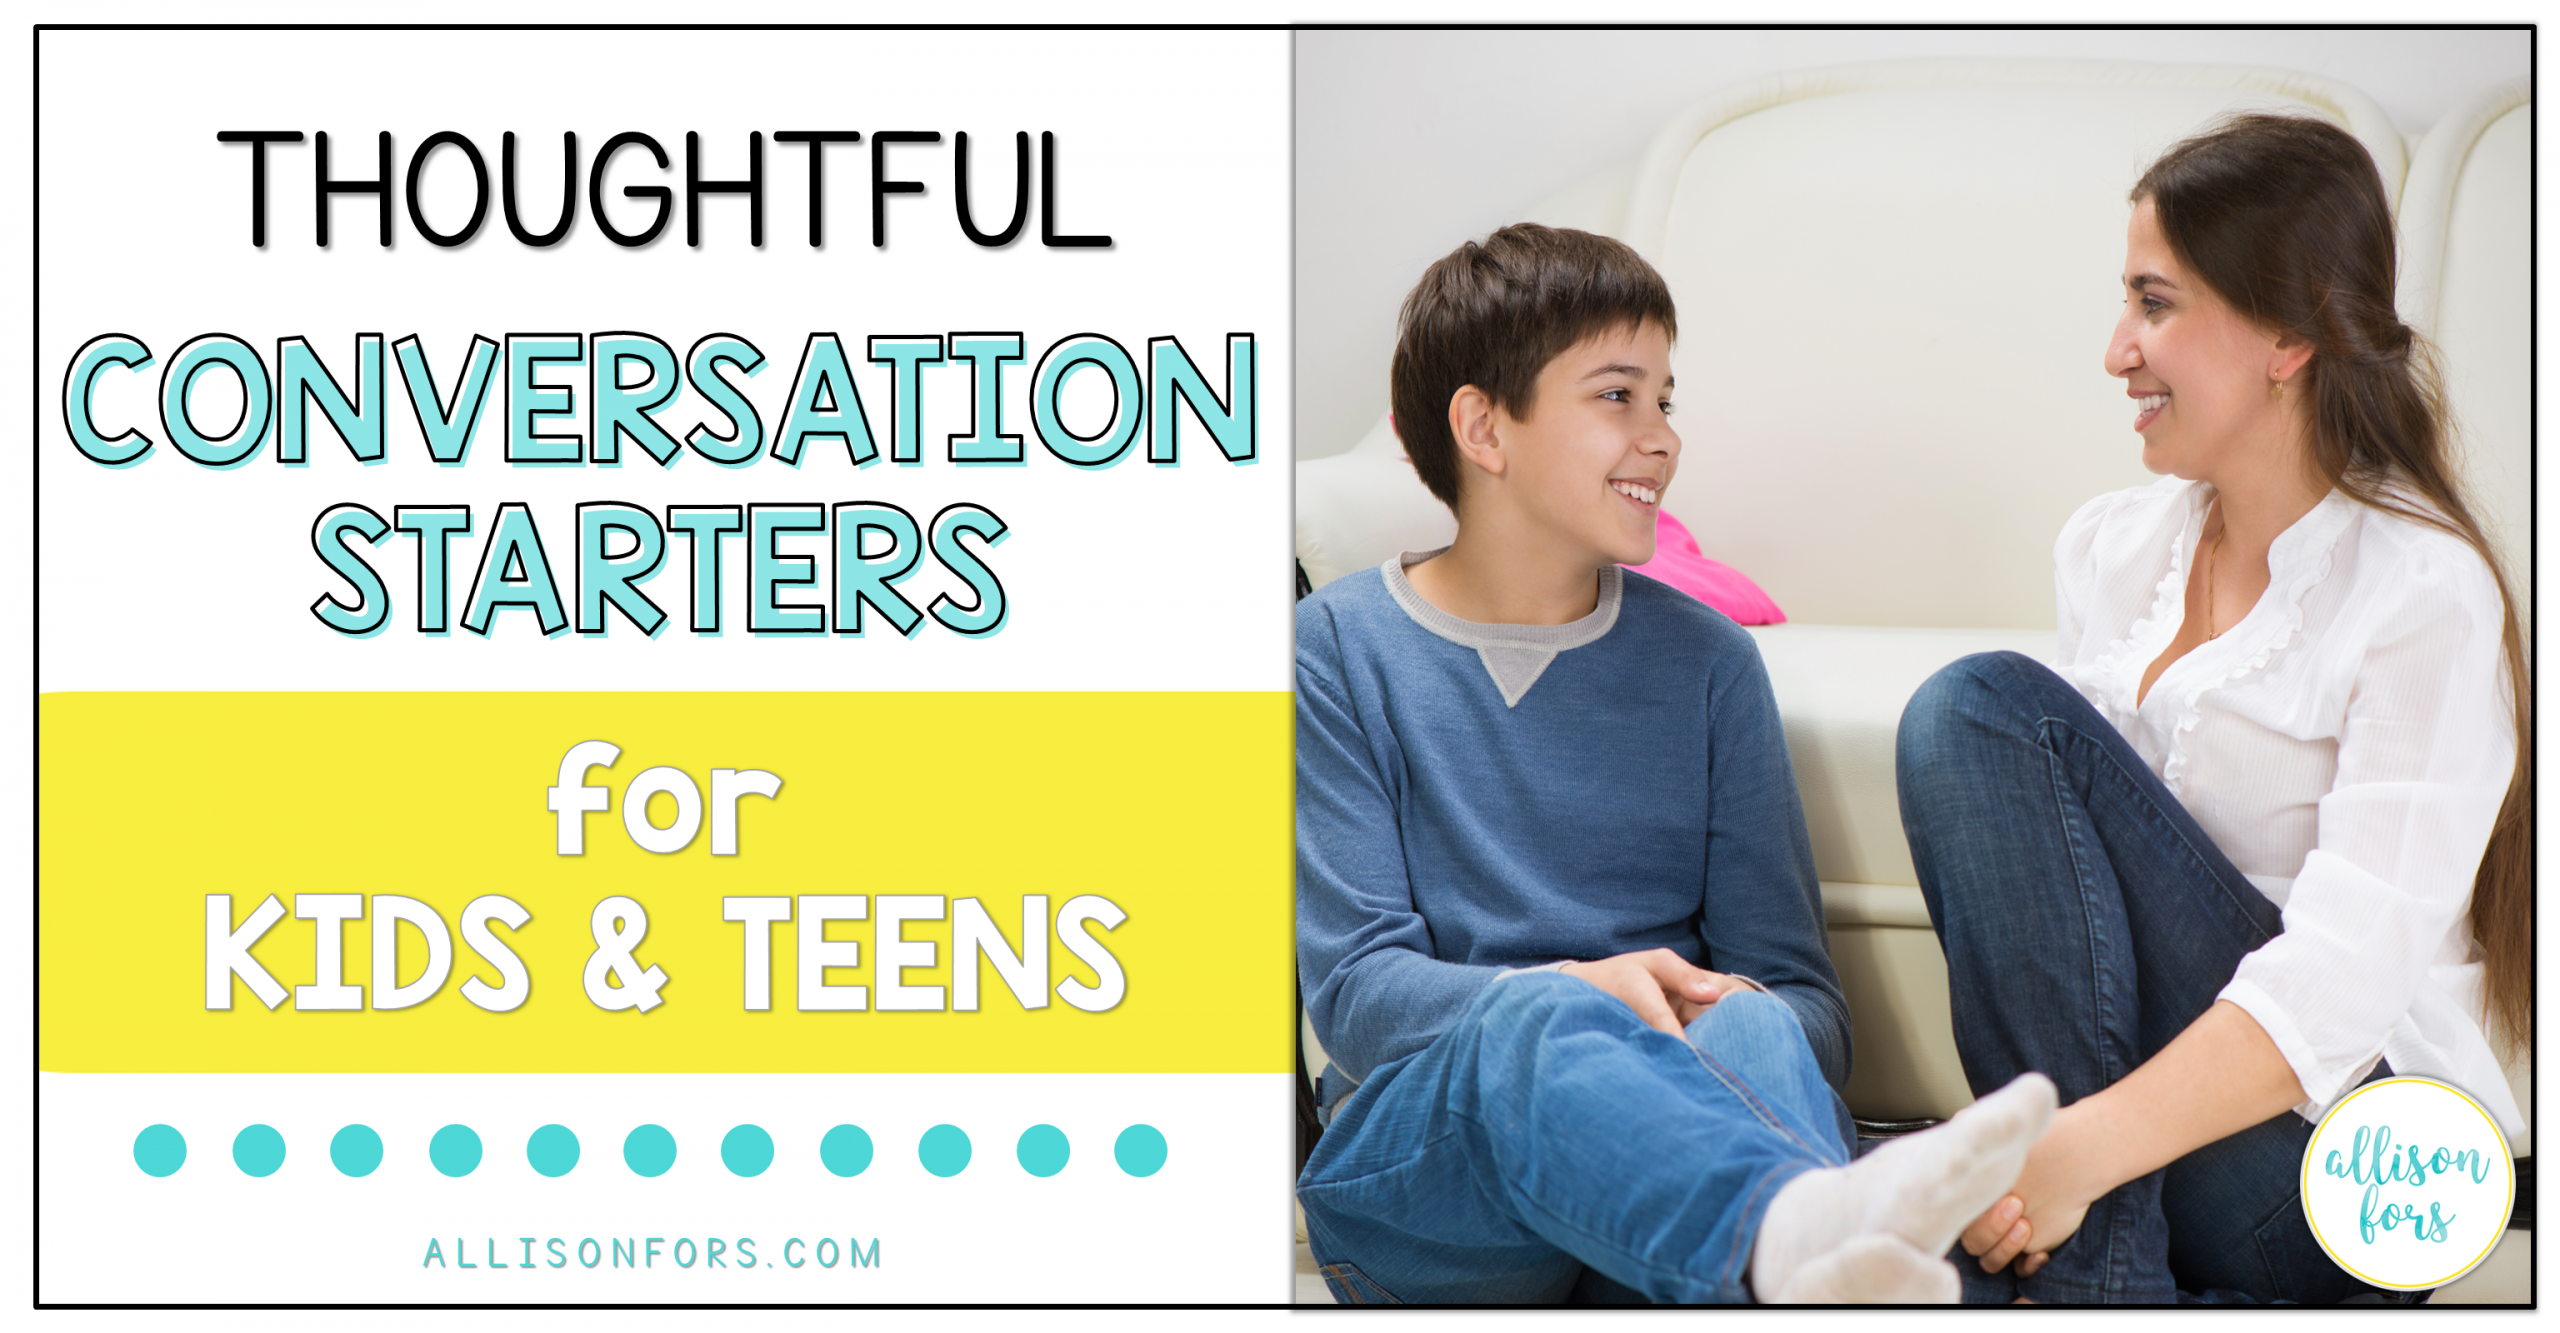 Thoughtful Conversation Starters for Kids and Teens